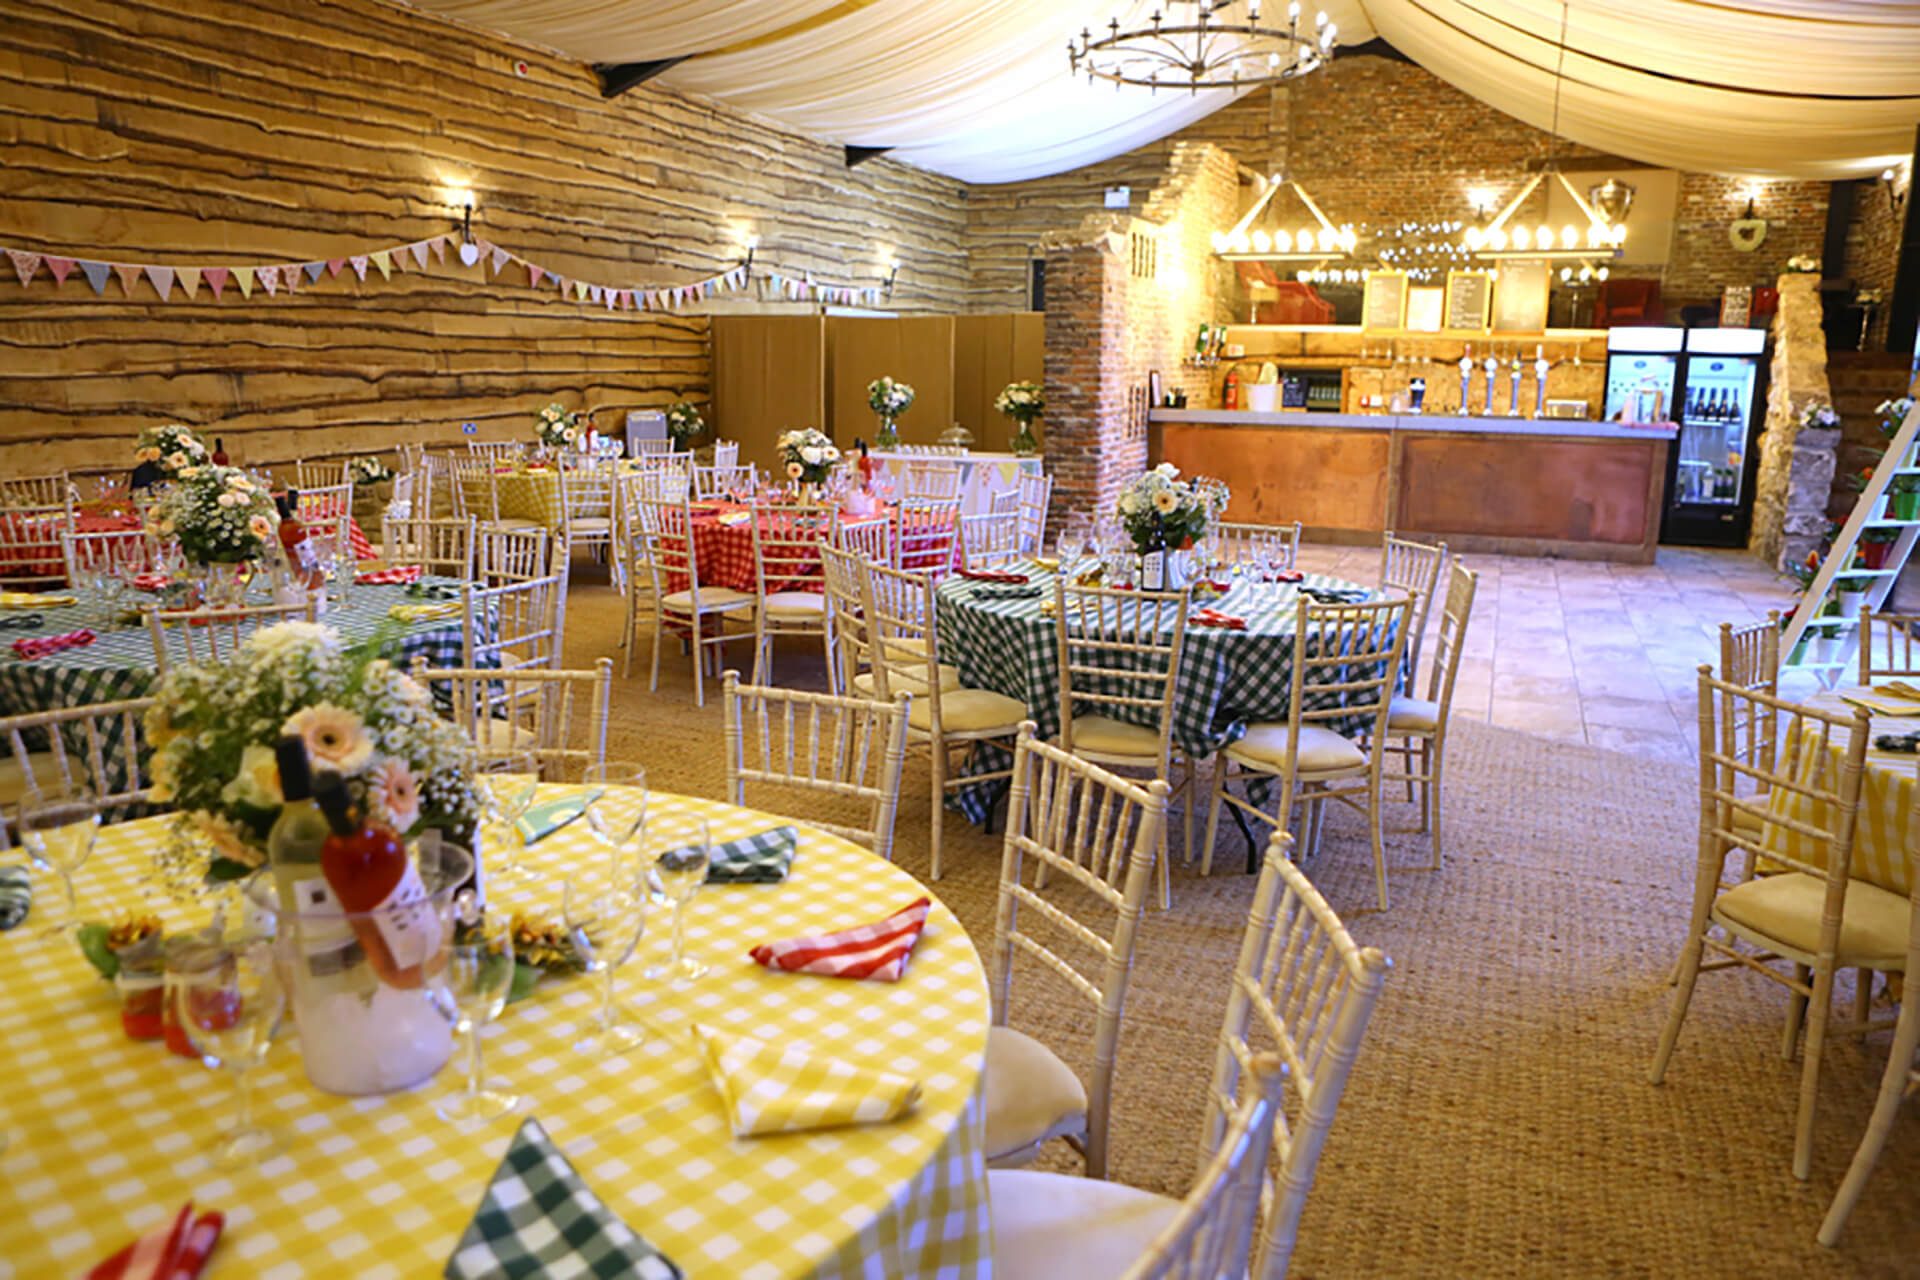 Marianna and Paul bringing Gingham chic to the wedding barn. Photo by Simon Stock.